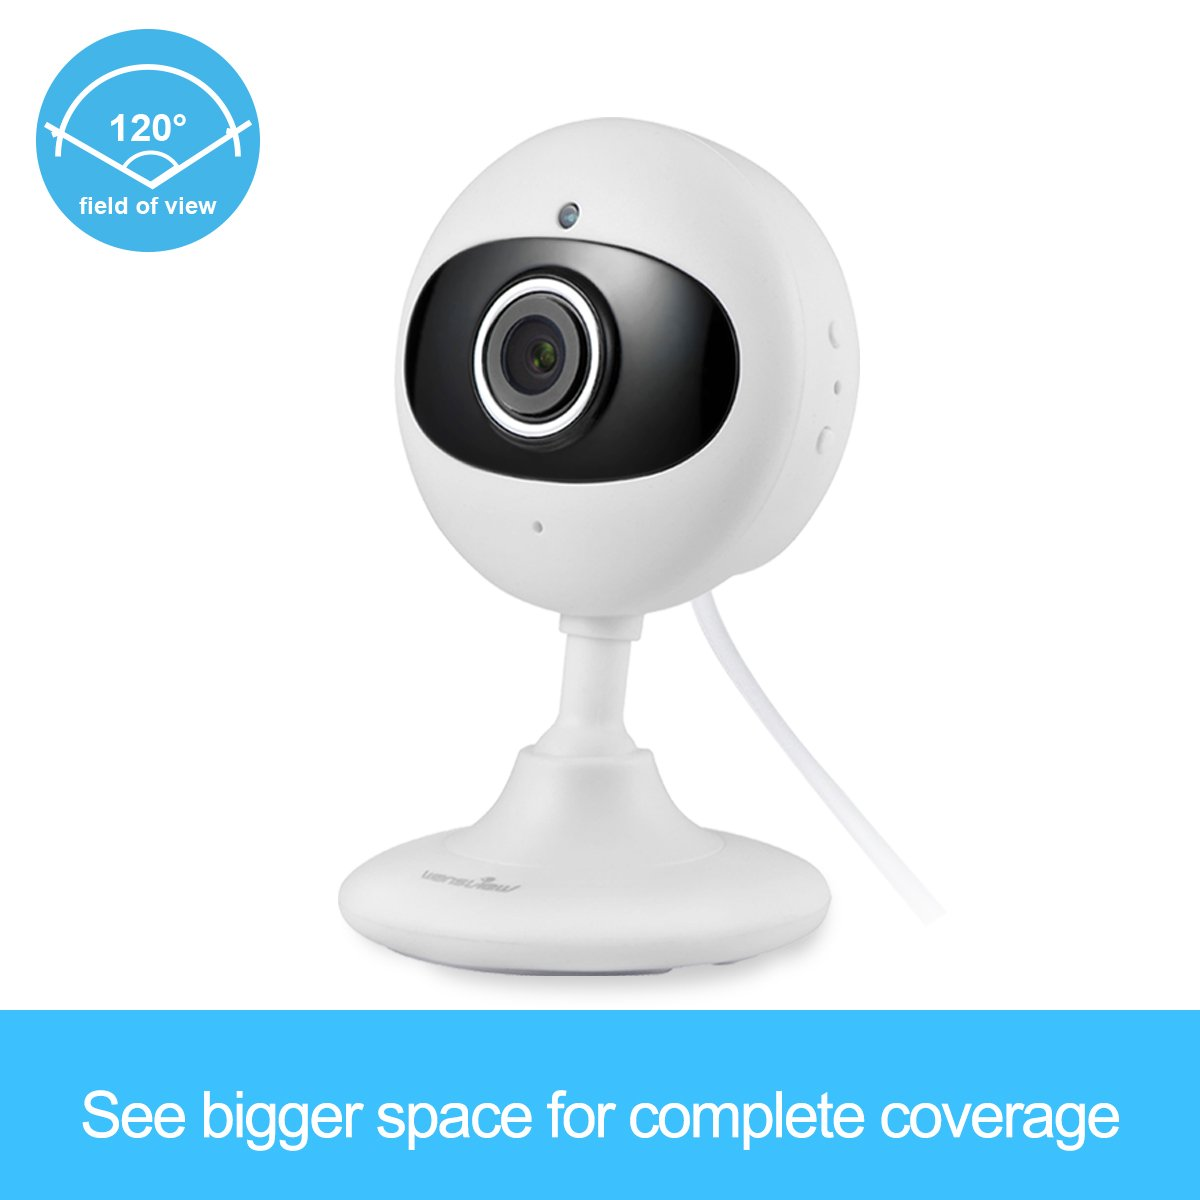 Details about Wansview Wireless Home Camera, 1080P WiFi Security Indoor IP  Camera for Baby